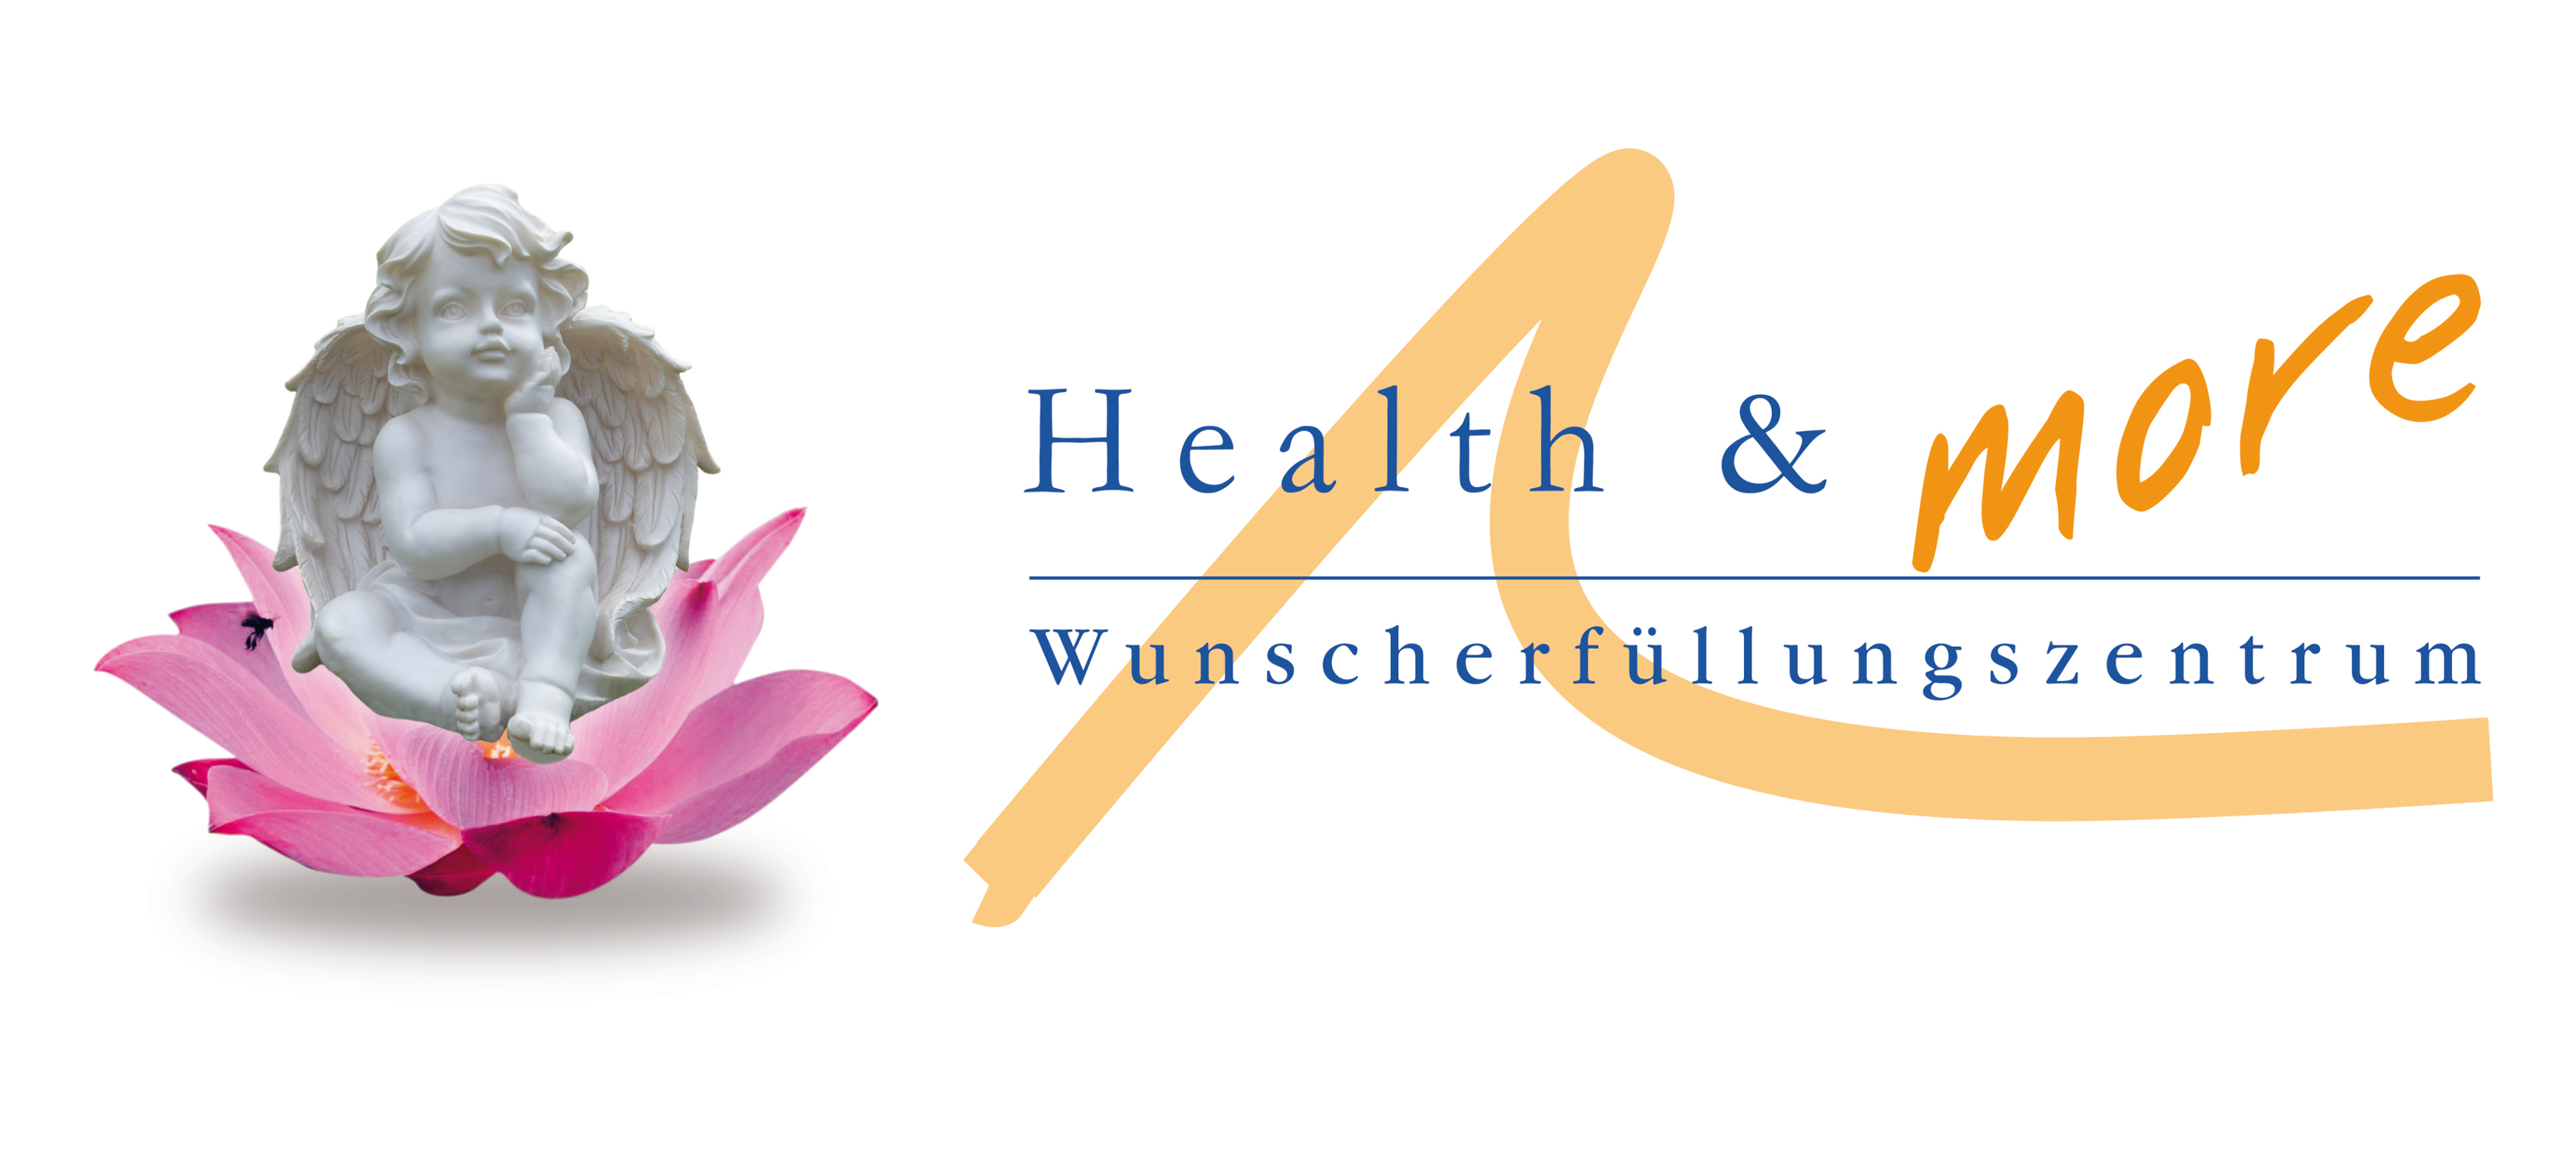 Health and more – Wunscherfüllungszentrum